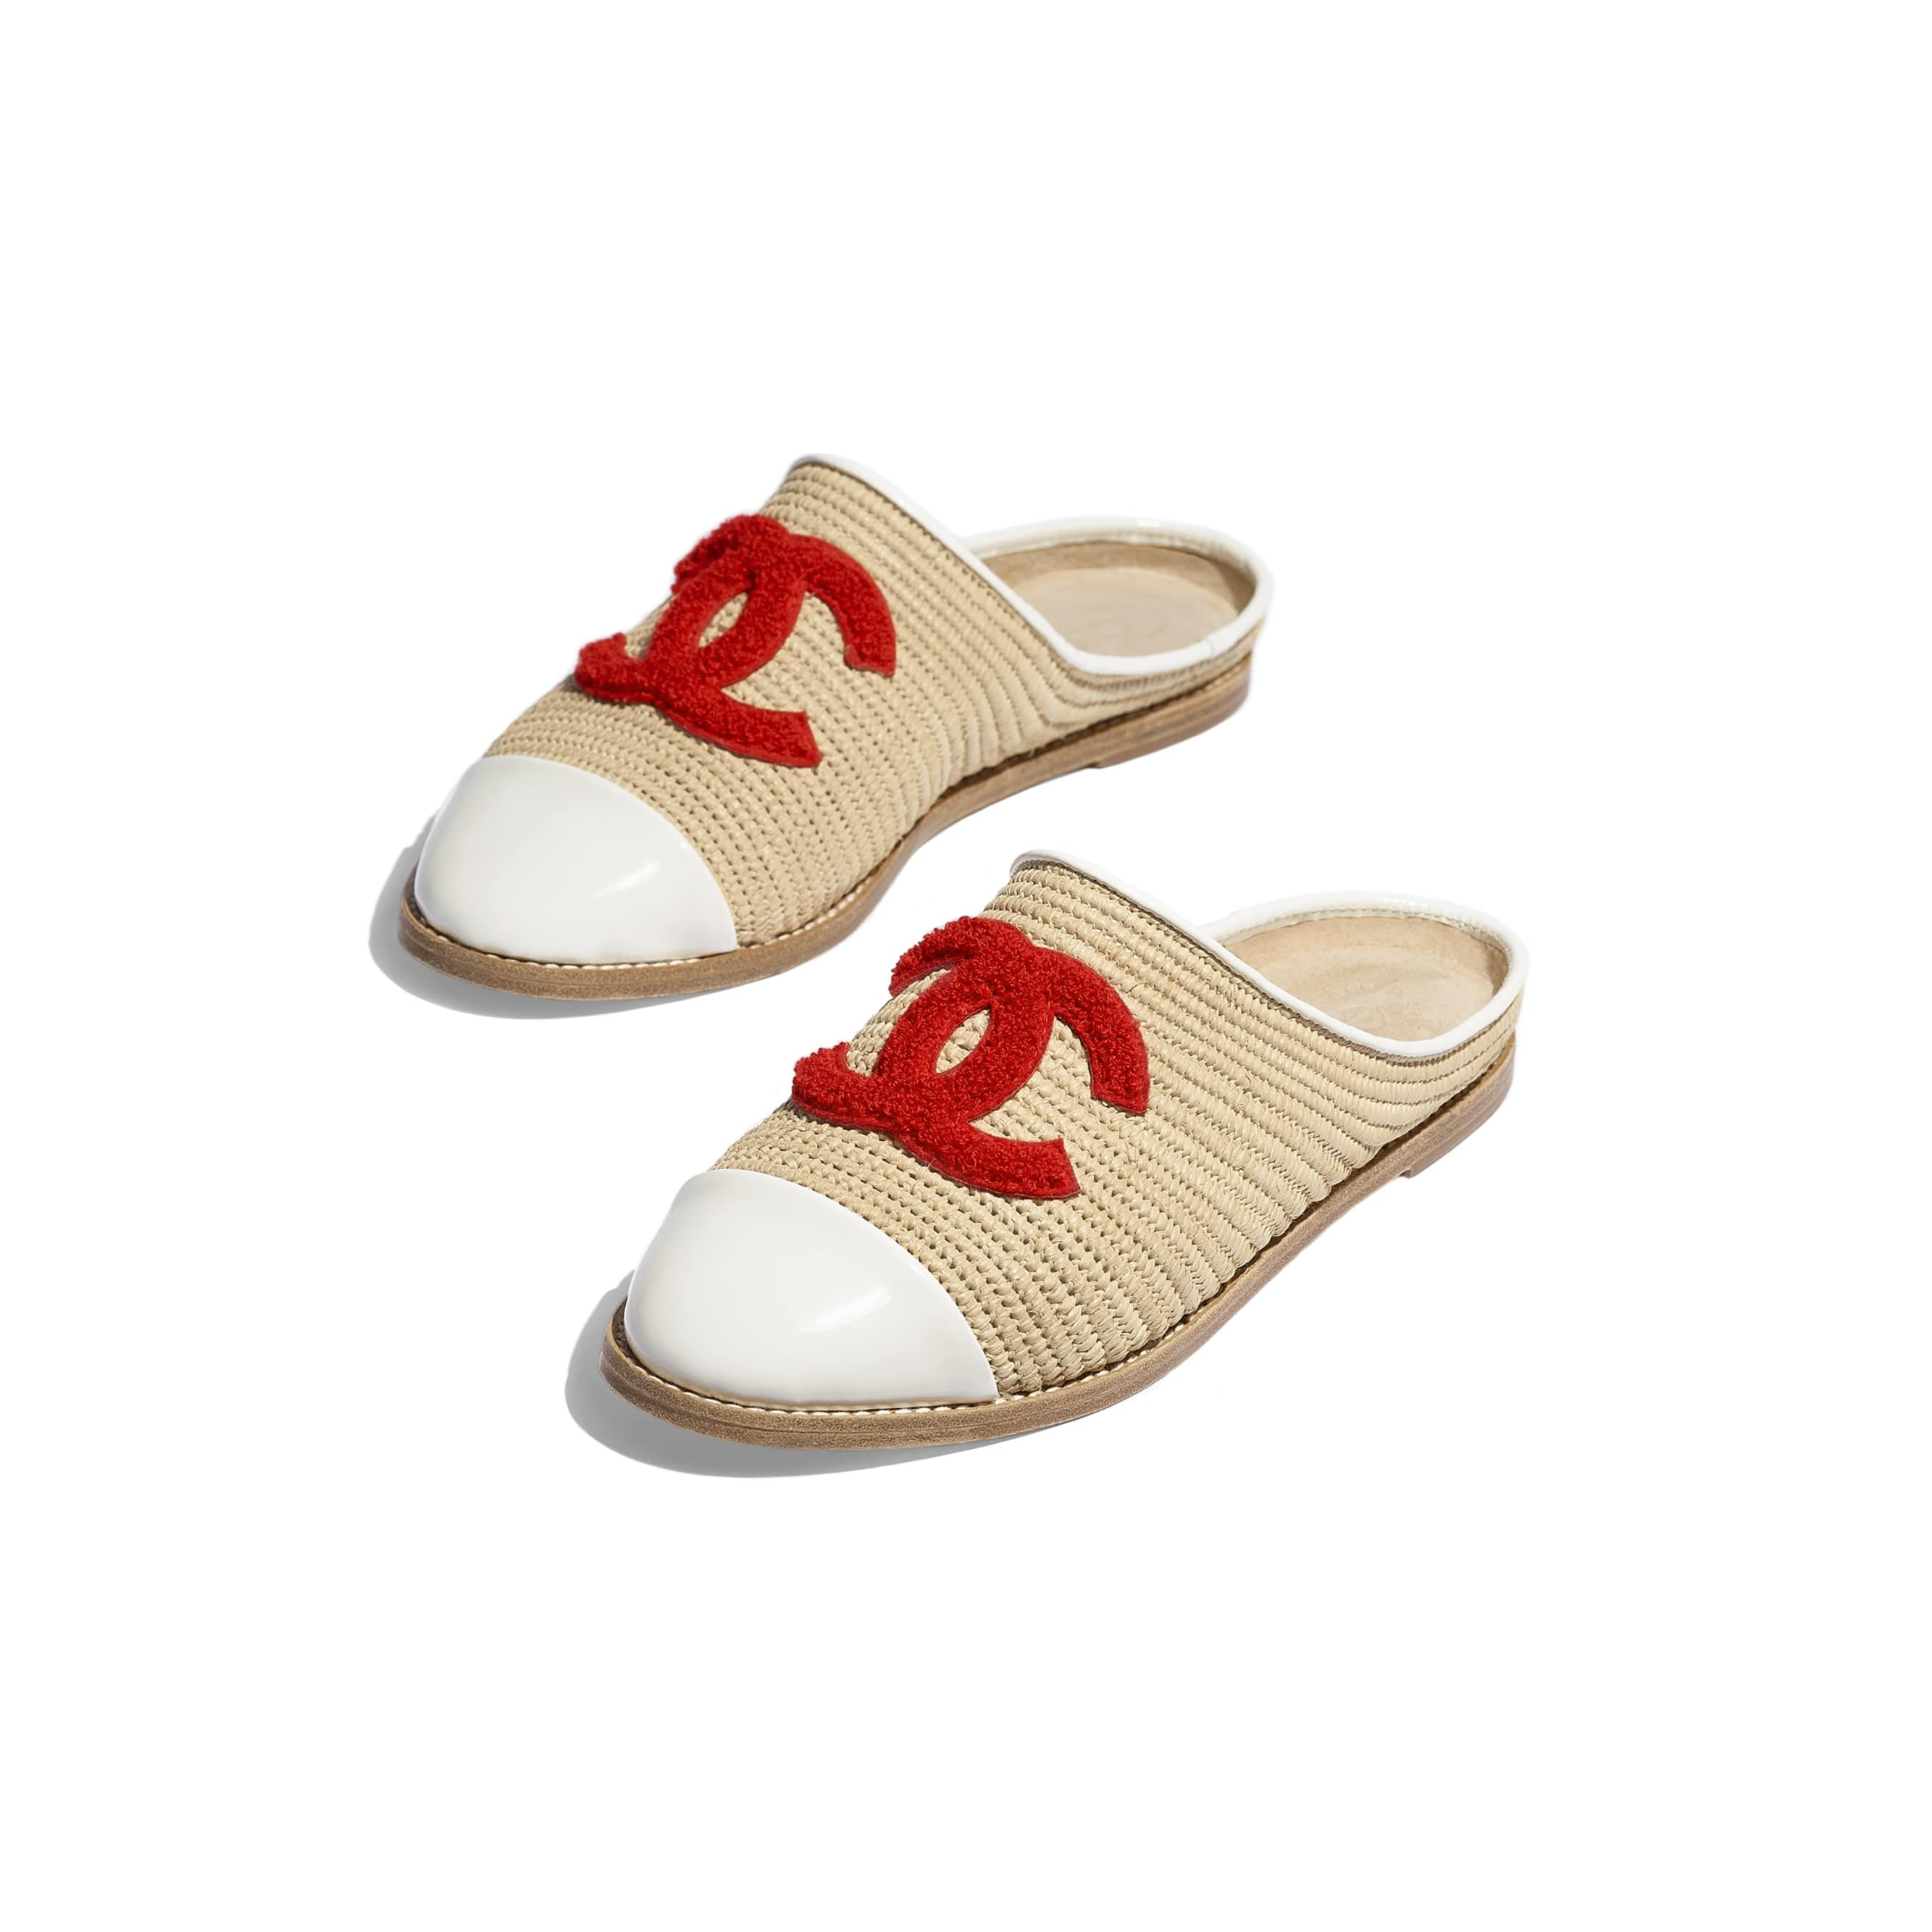 e7c191a03 Espadrilles - Beige & Red - Straw & Fabric - Other view - see ...